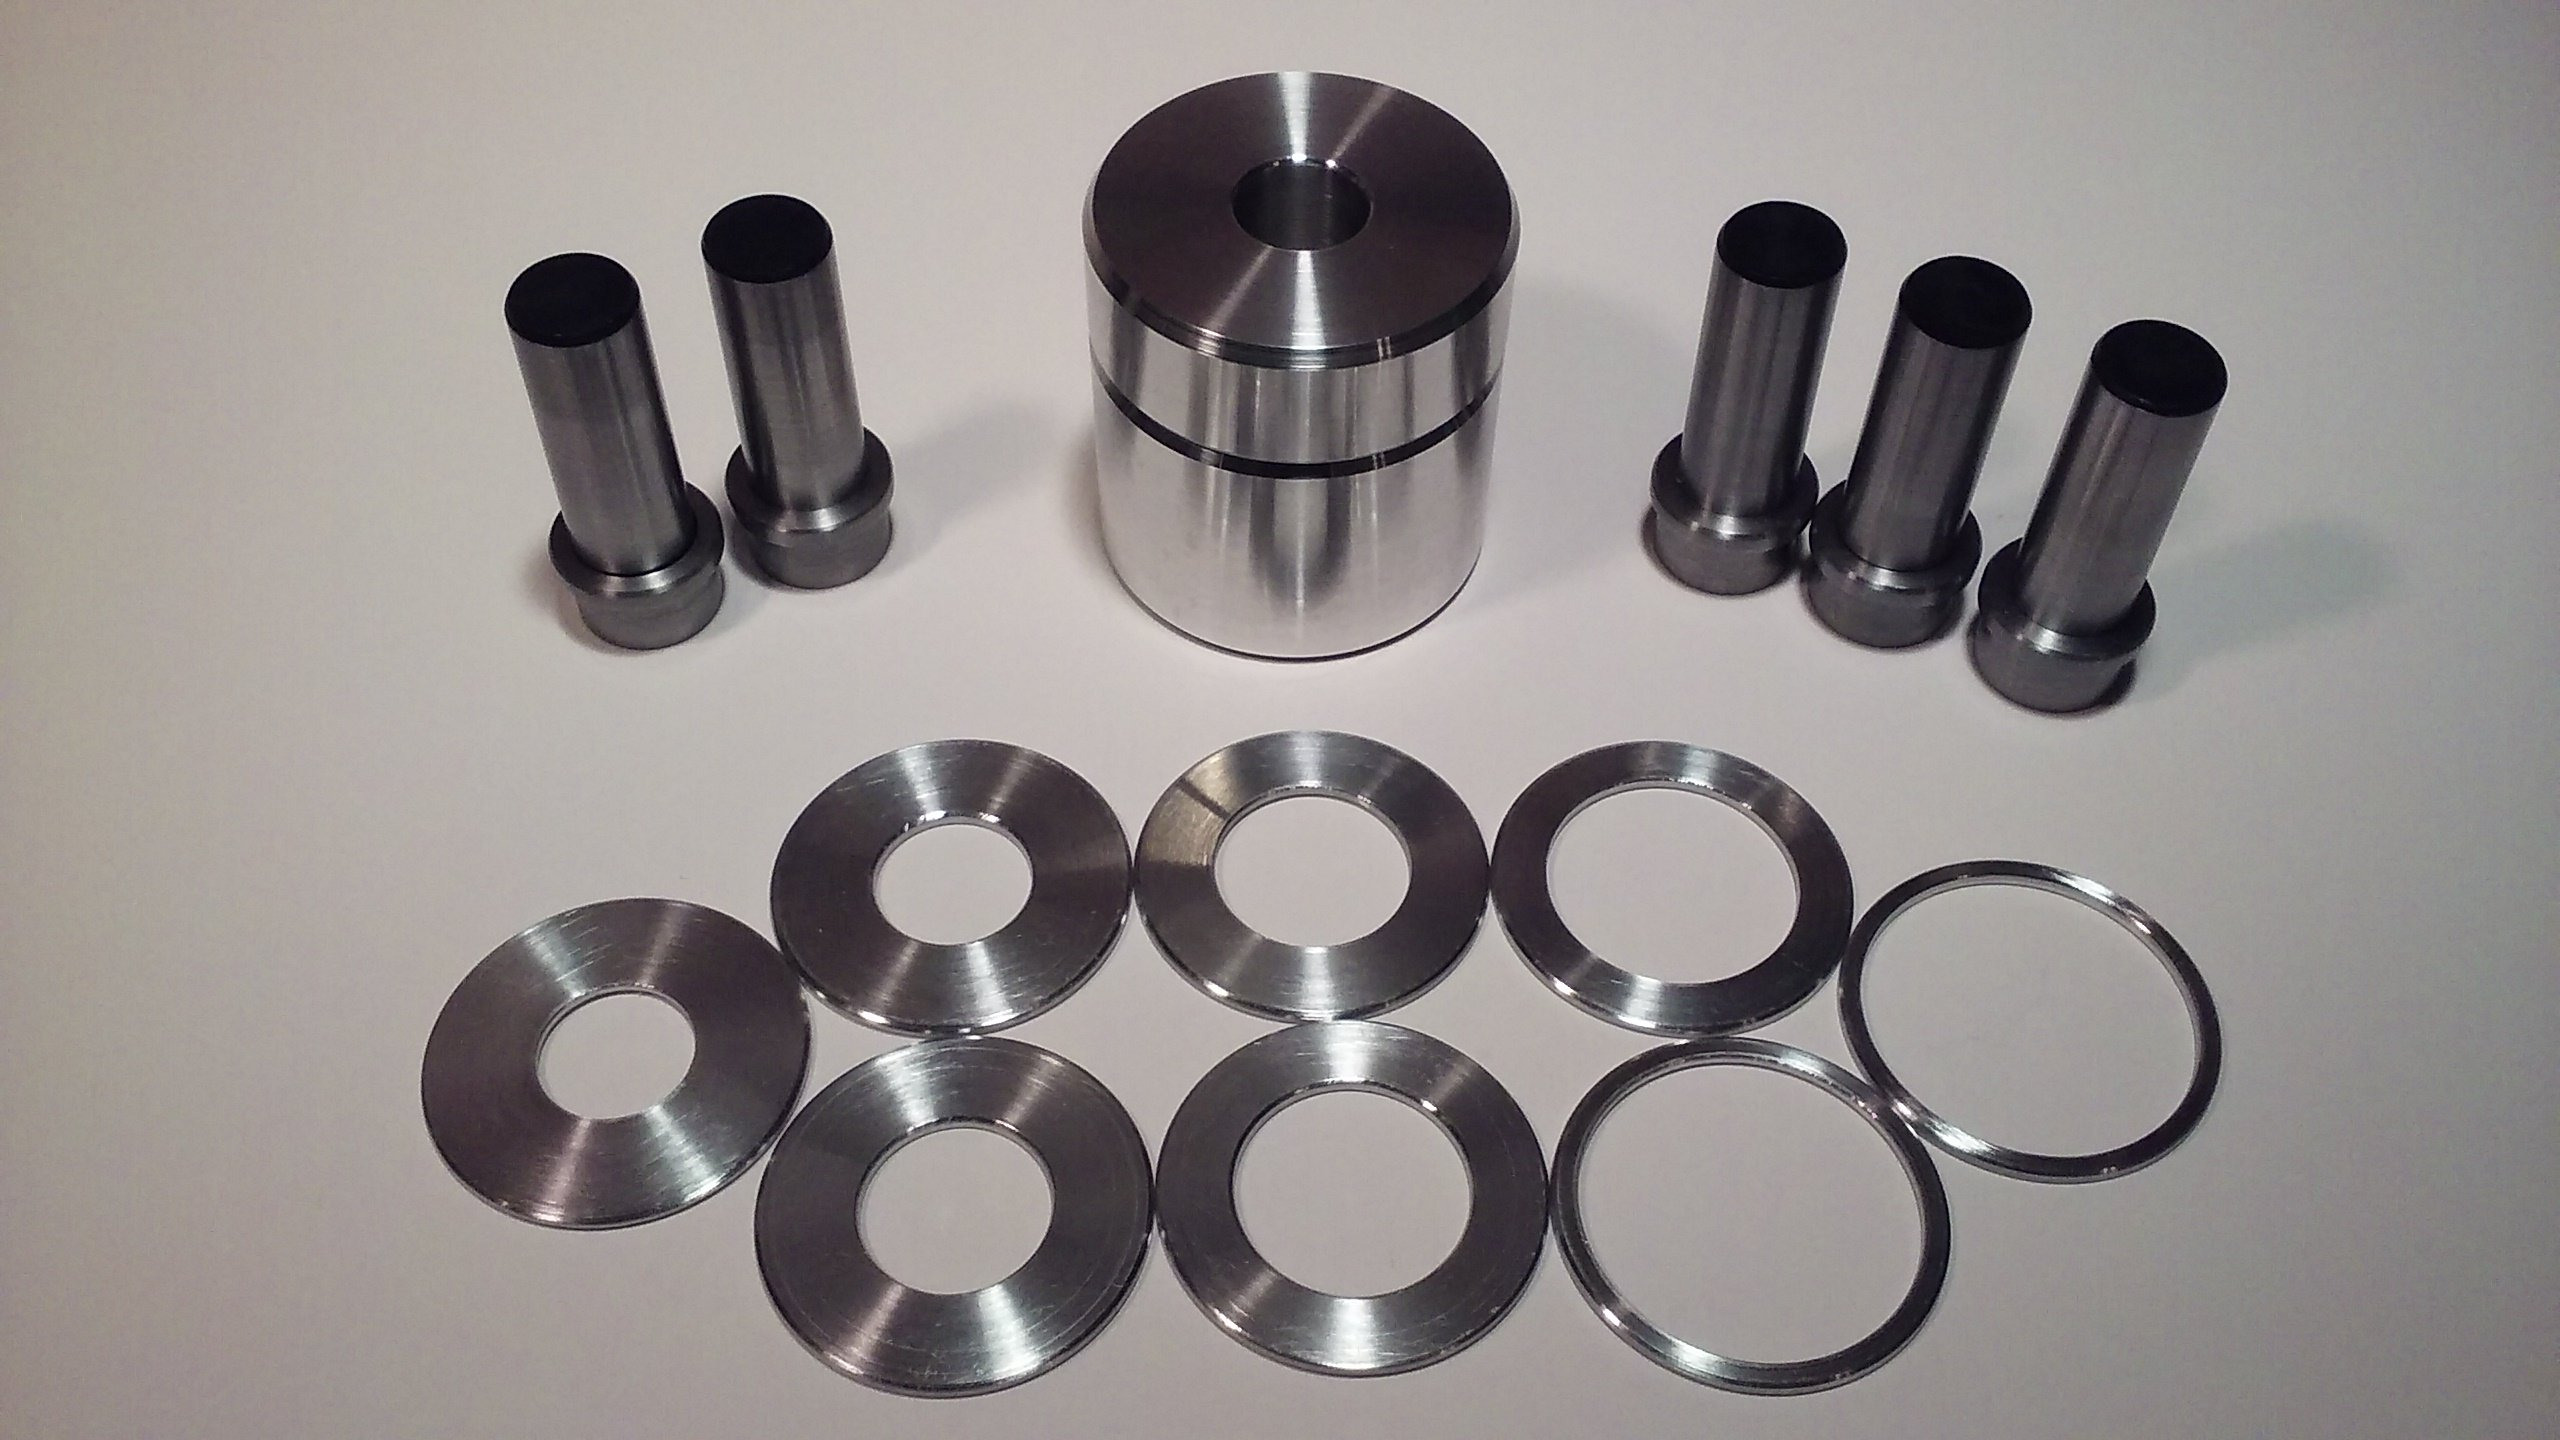 Coin Ring Center Punch 1.75'' for Rounds. Get All 5 Punches and 8 Spacers!!! by Austin Swenson